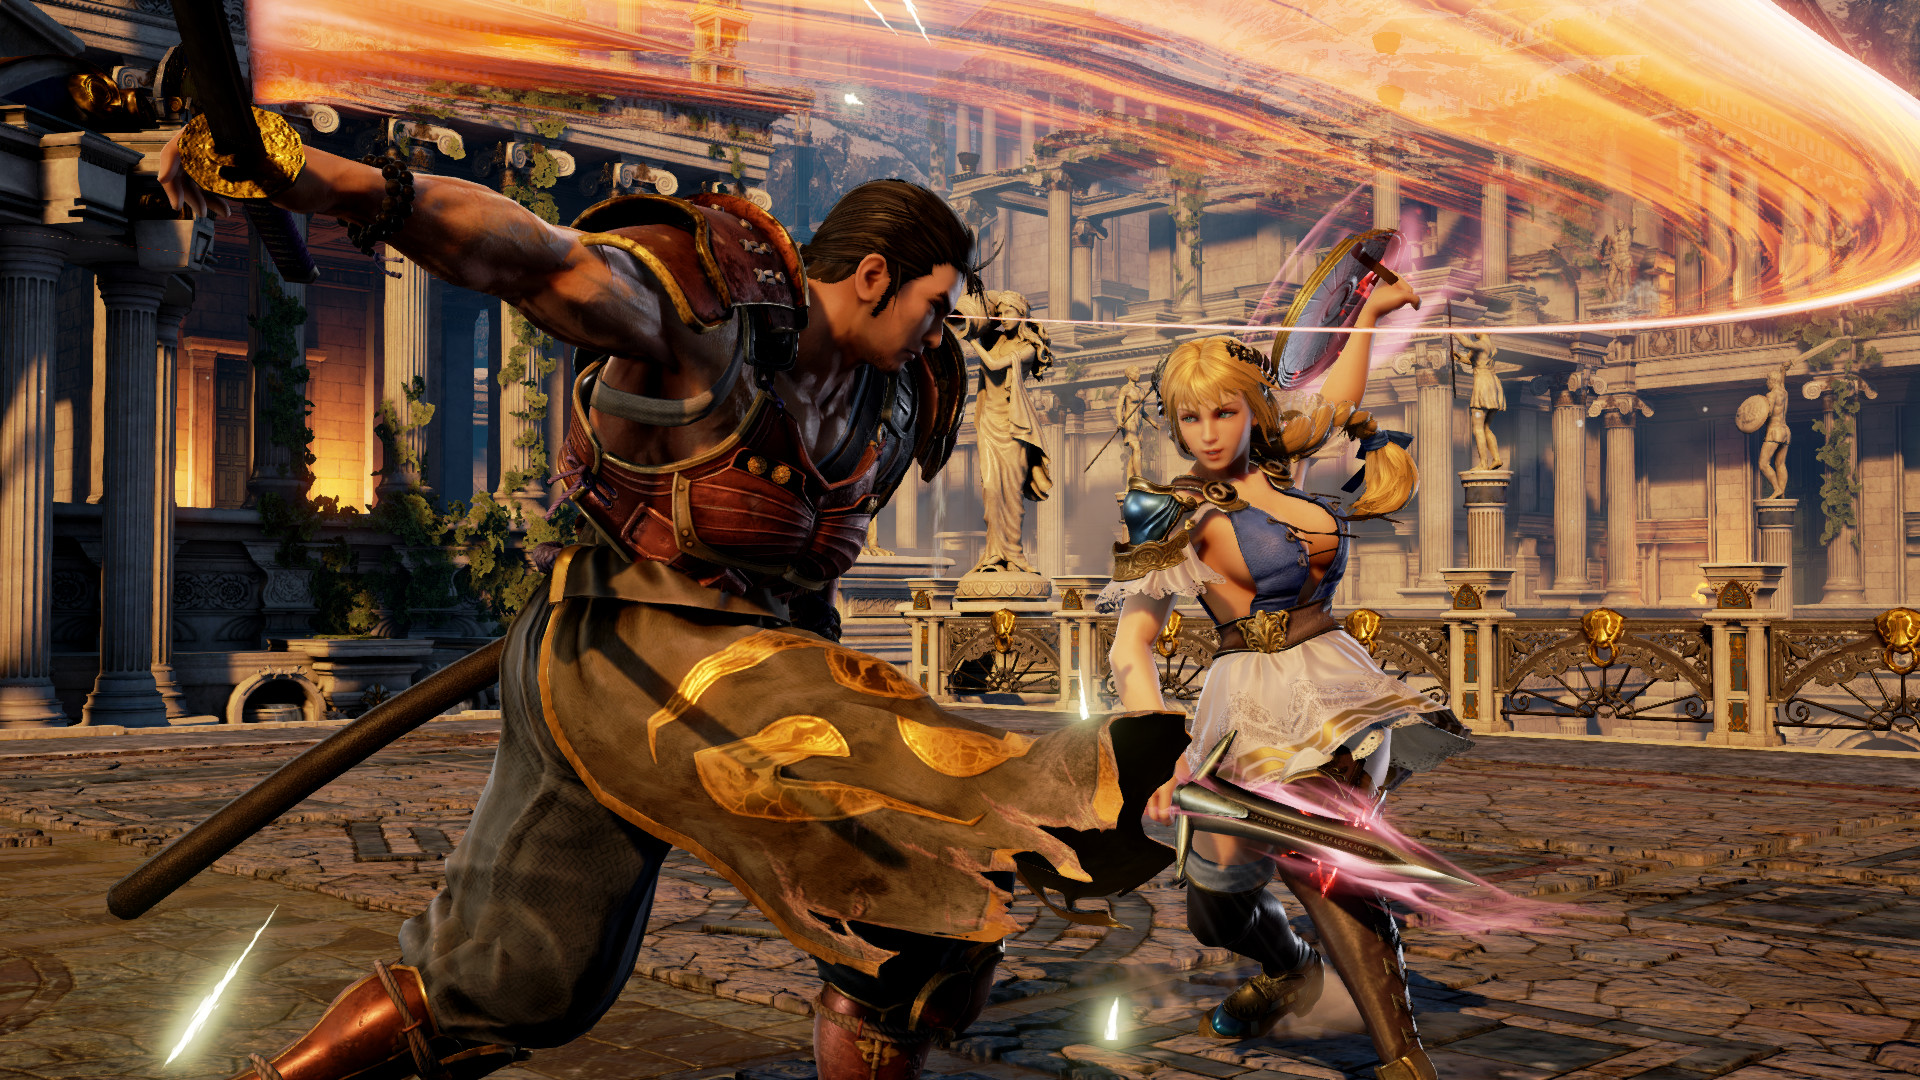 SOULCALIBUR VI game image